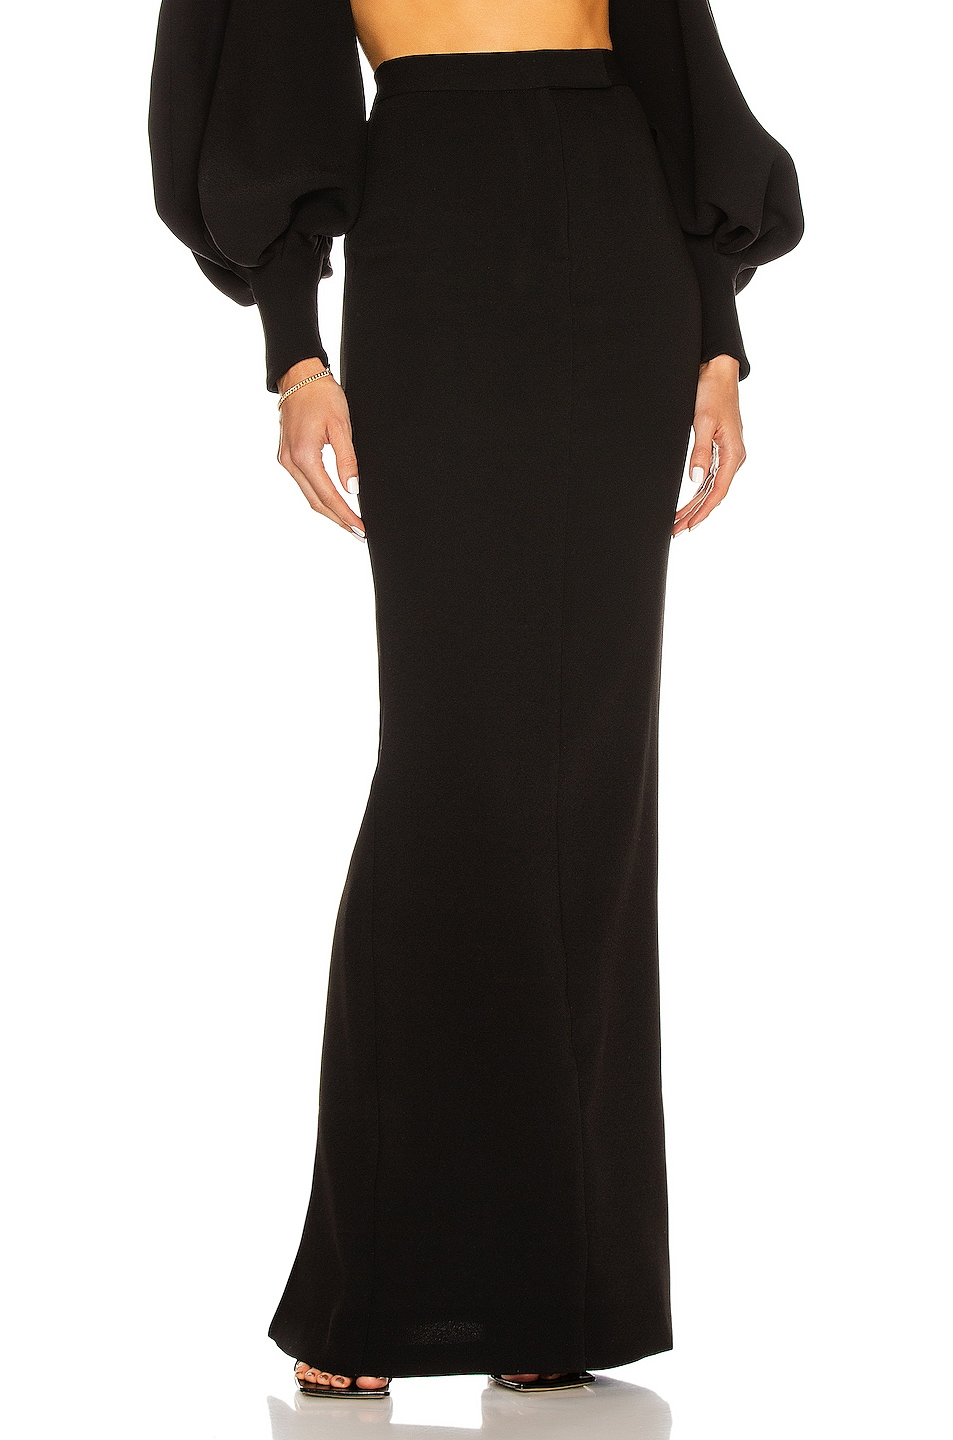 Image 1 of Alex Perry Halen Skirt in Black